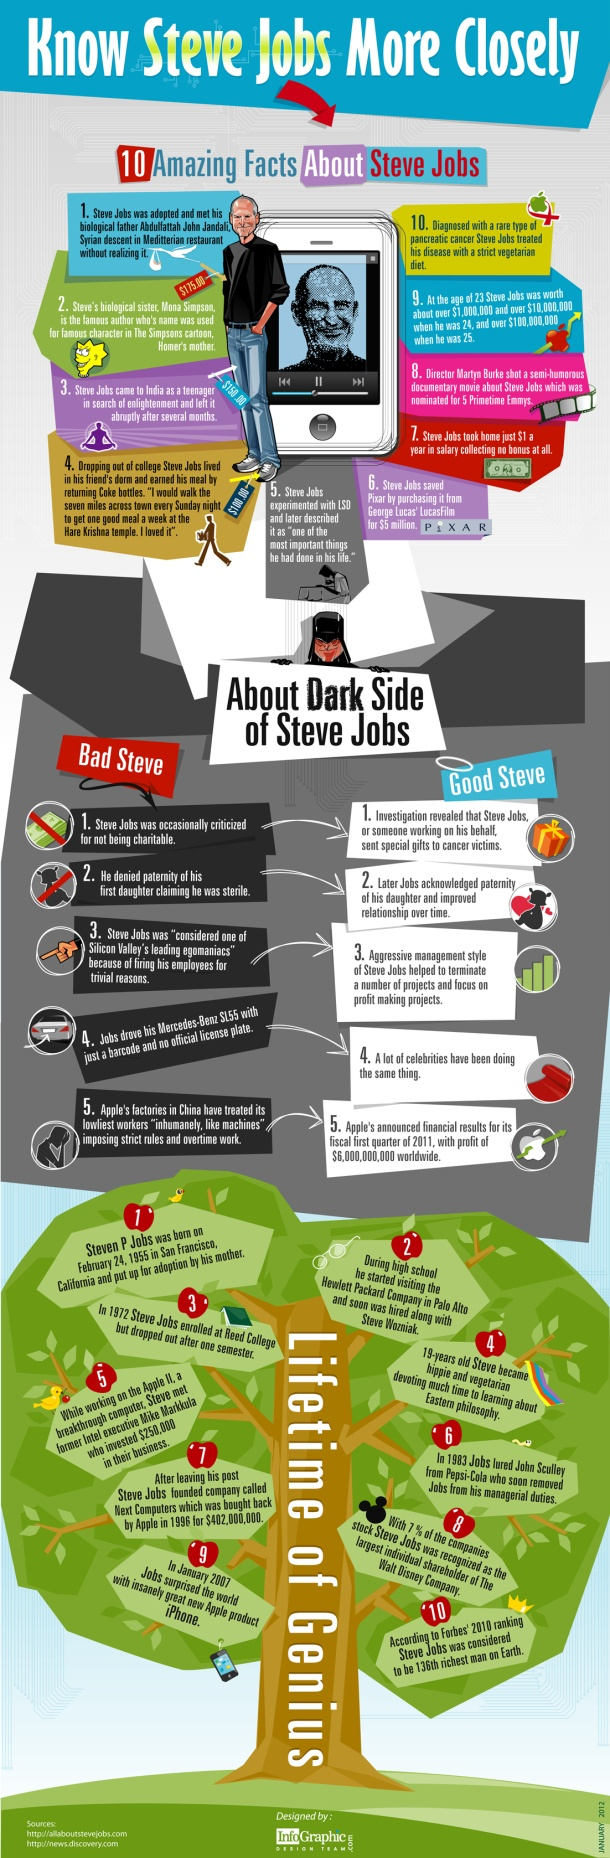 Know Steve Jobs More Closely: 10 Amazing Facts About Steve Jobs [INFOGRAPHIC] – Infographic List